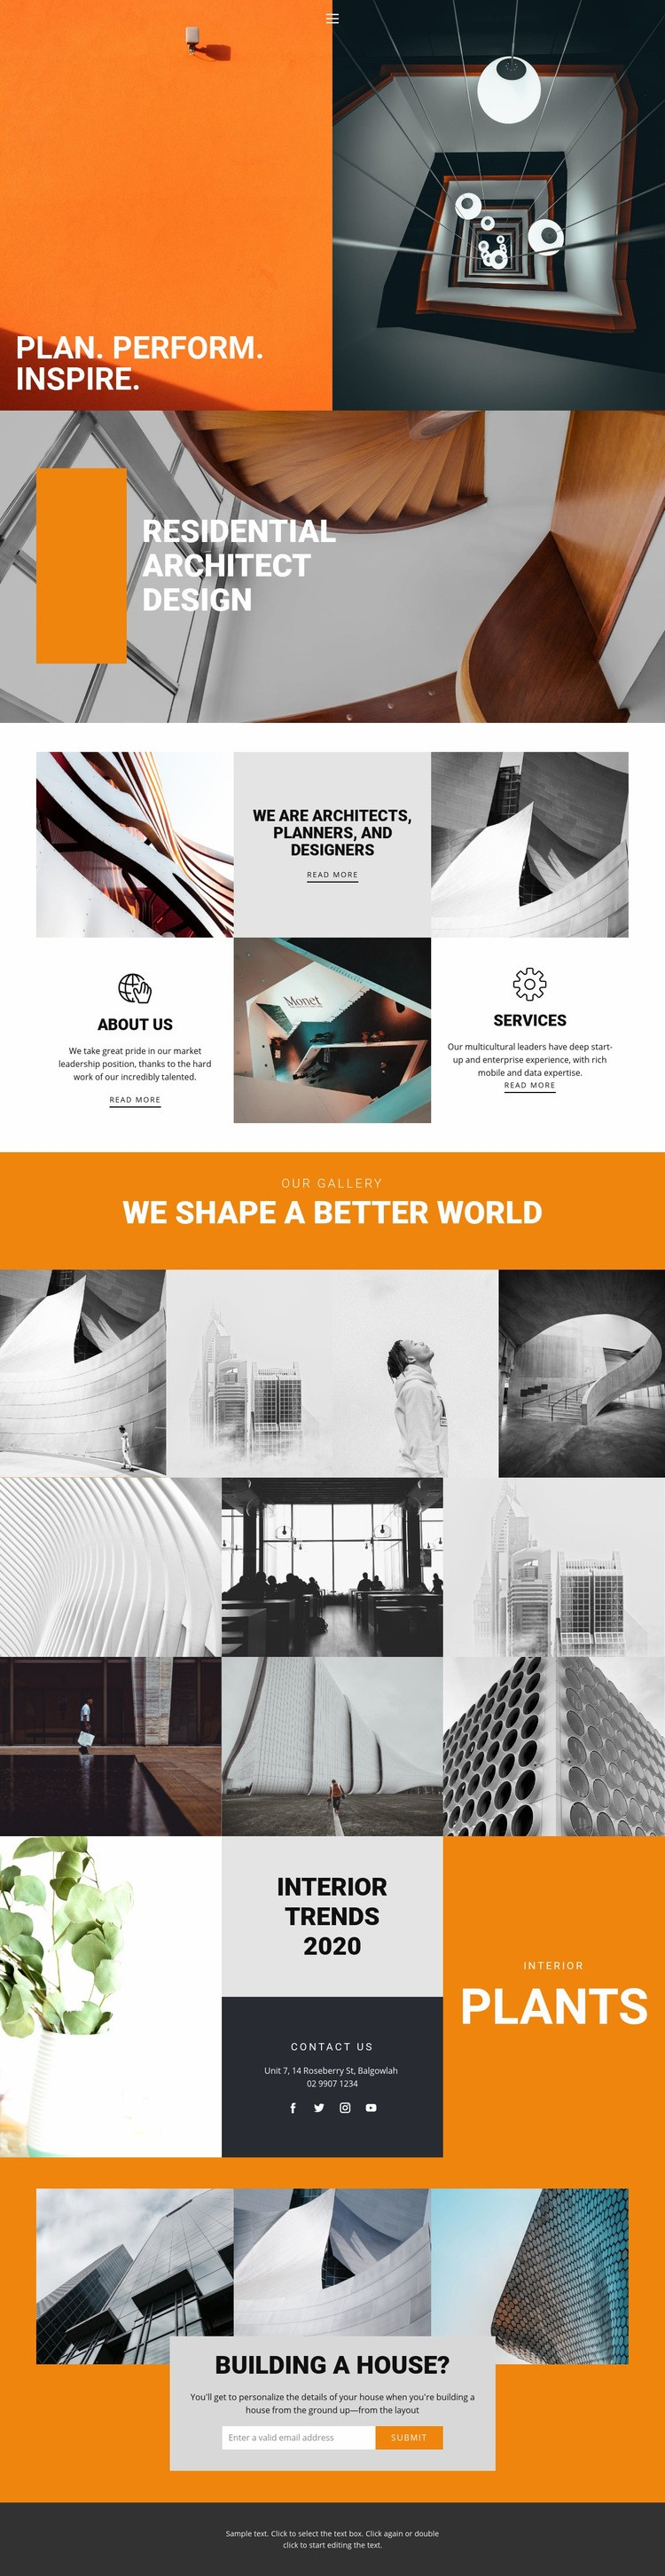 Inspiring ways of architecture Html Code Example